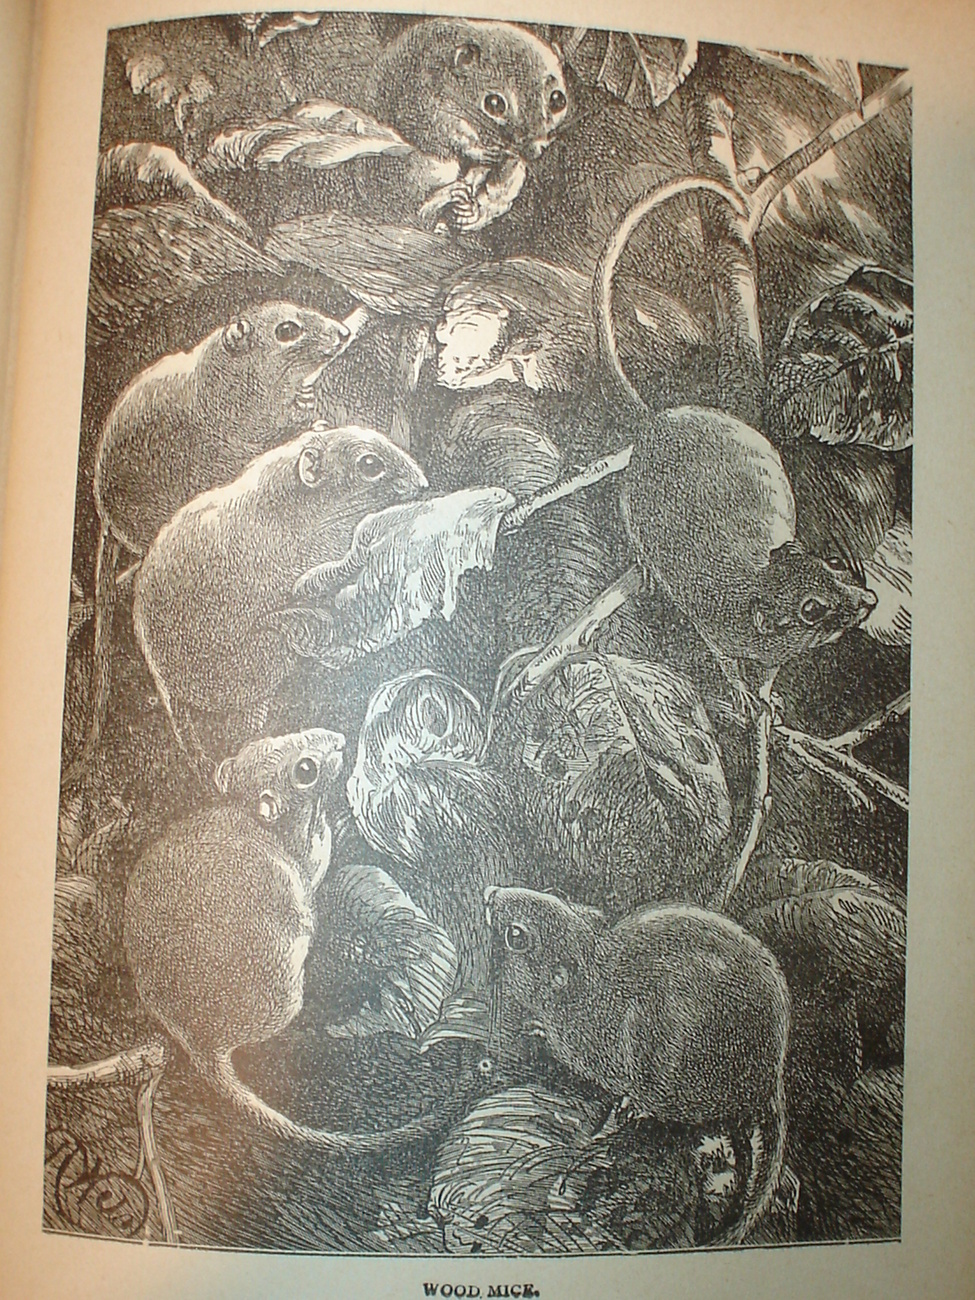 Originial 1899 Print of Mouse Party